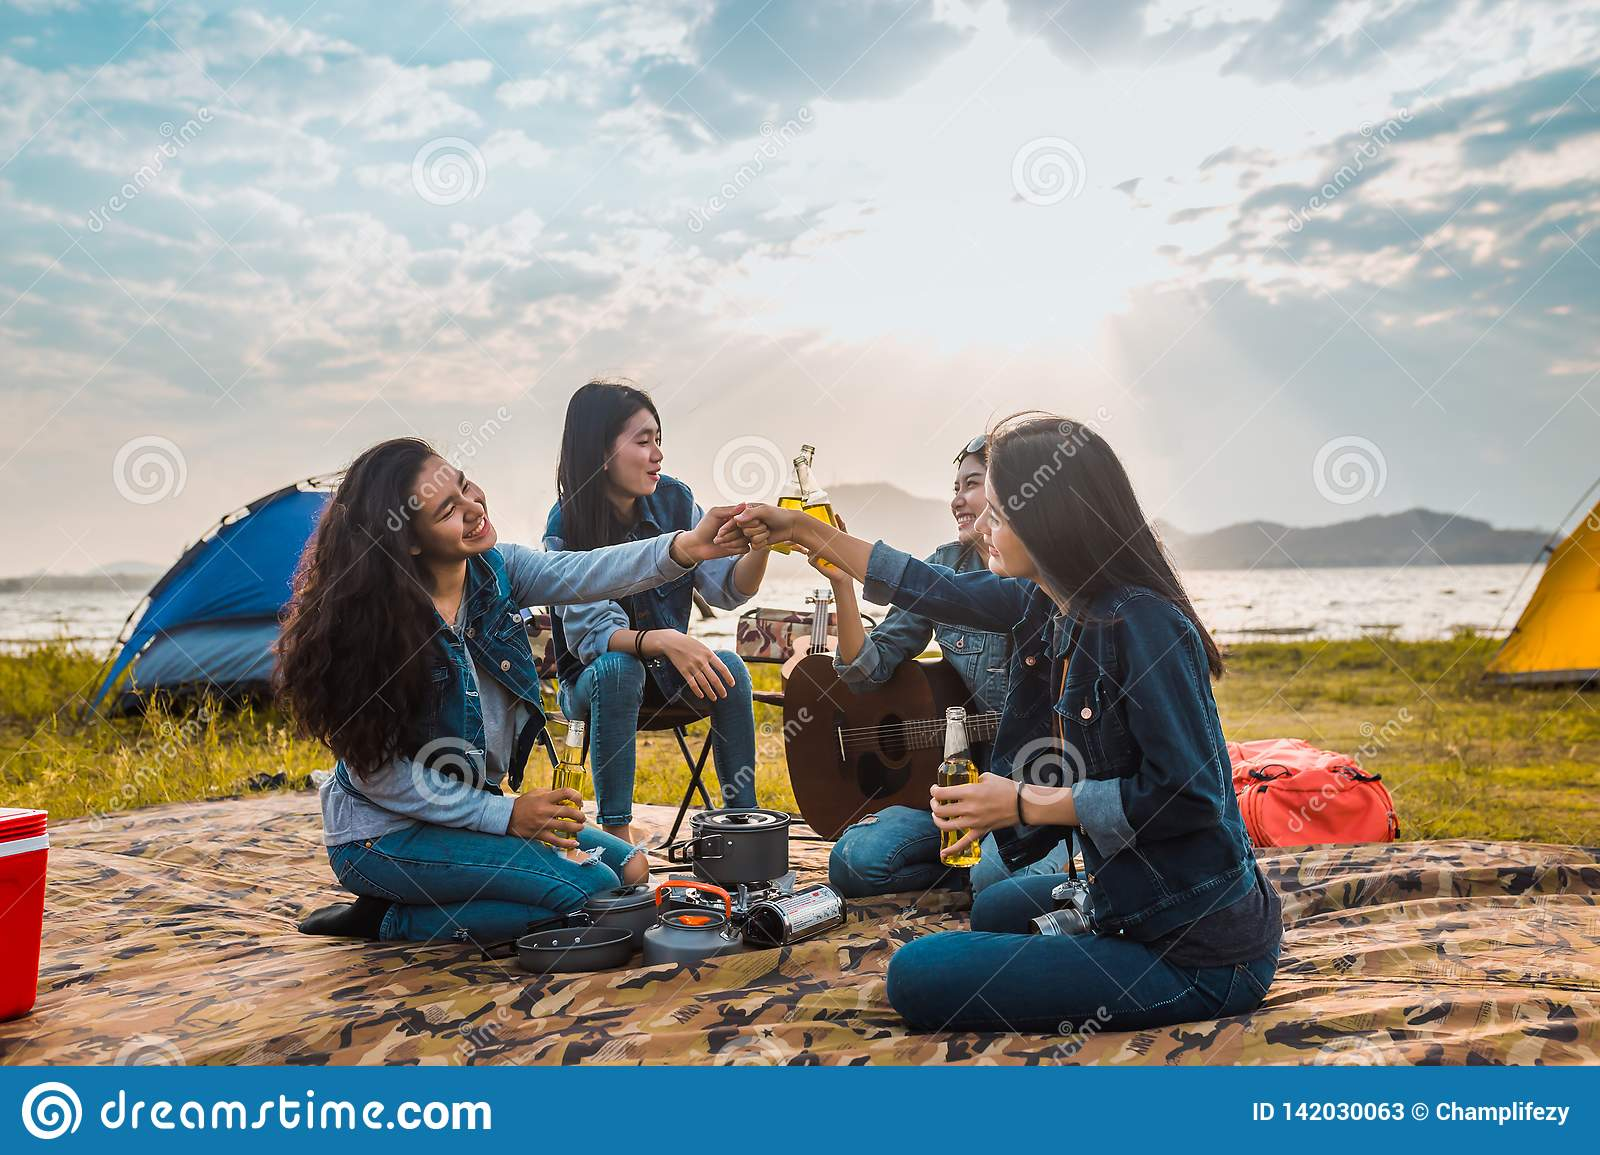 Diversity women party clink bottles enjoy camping